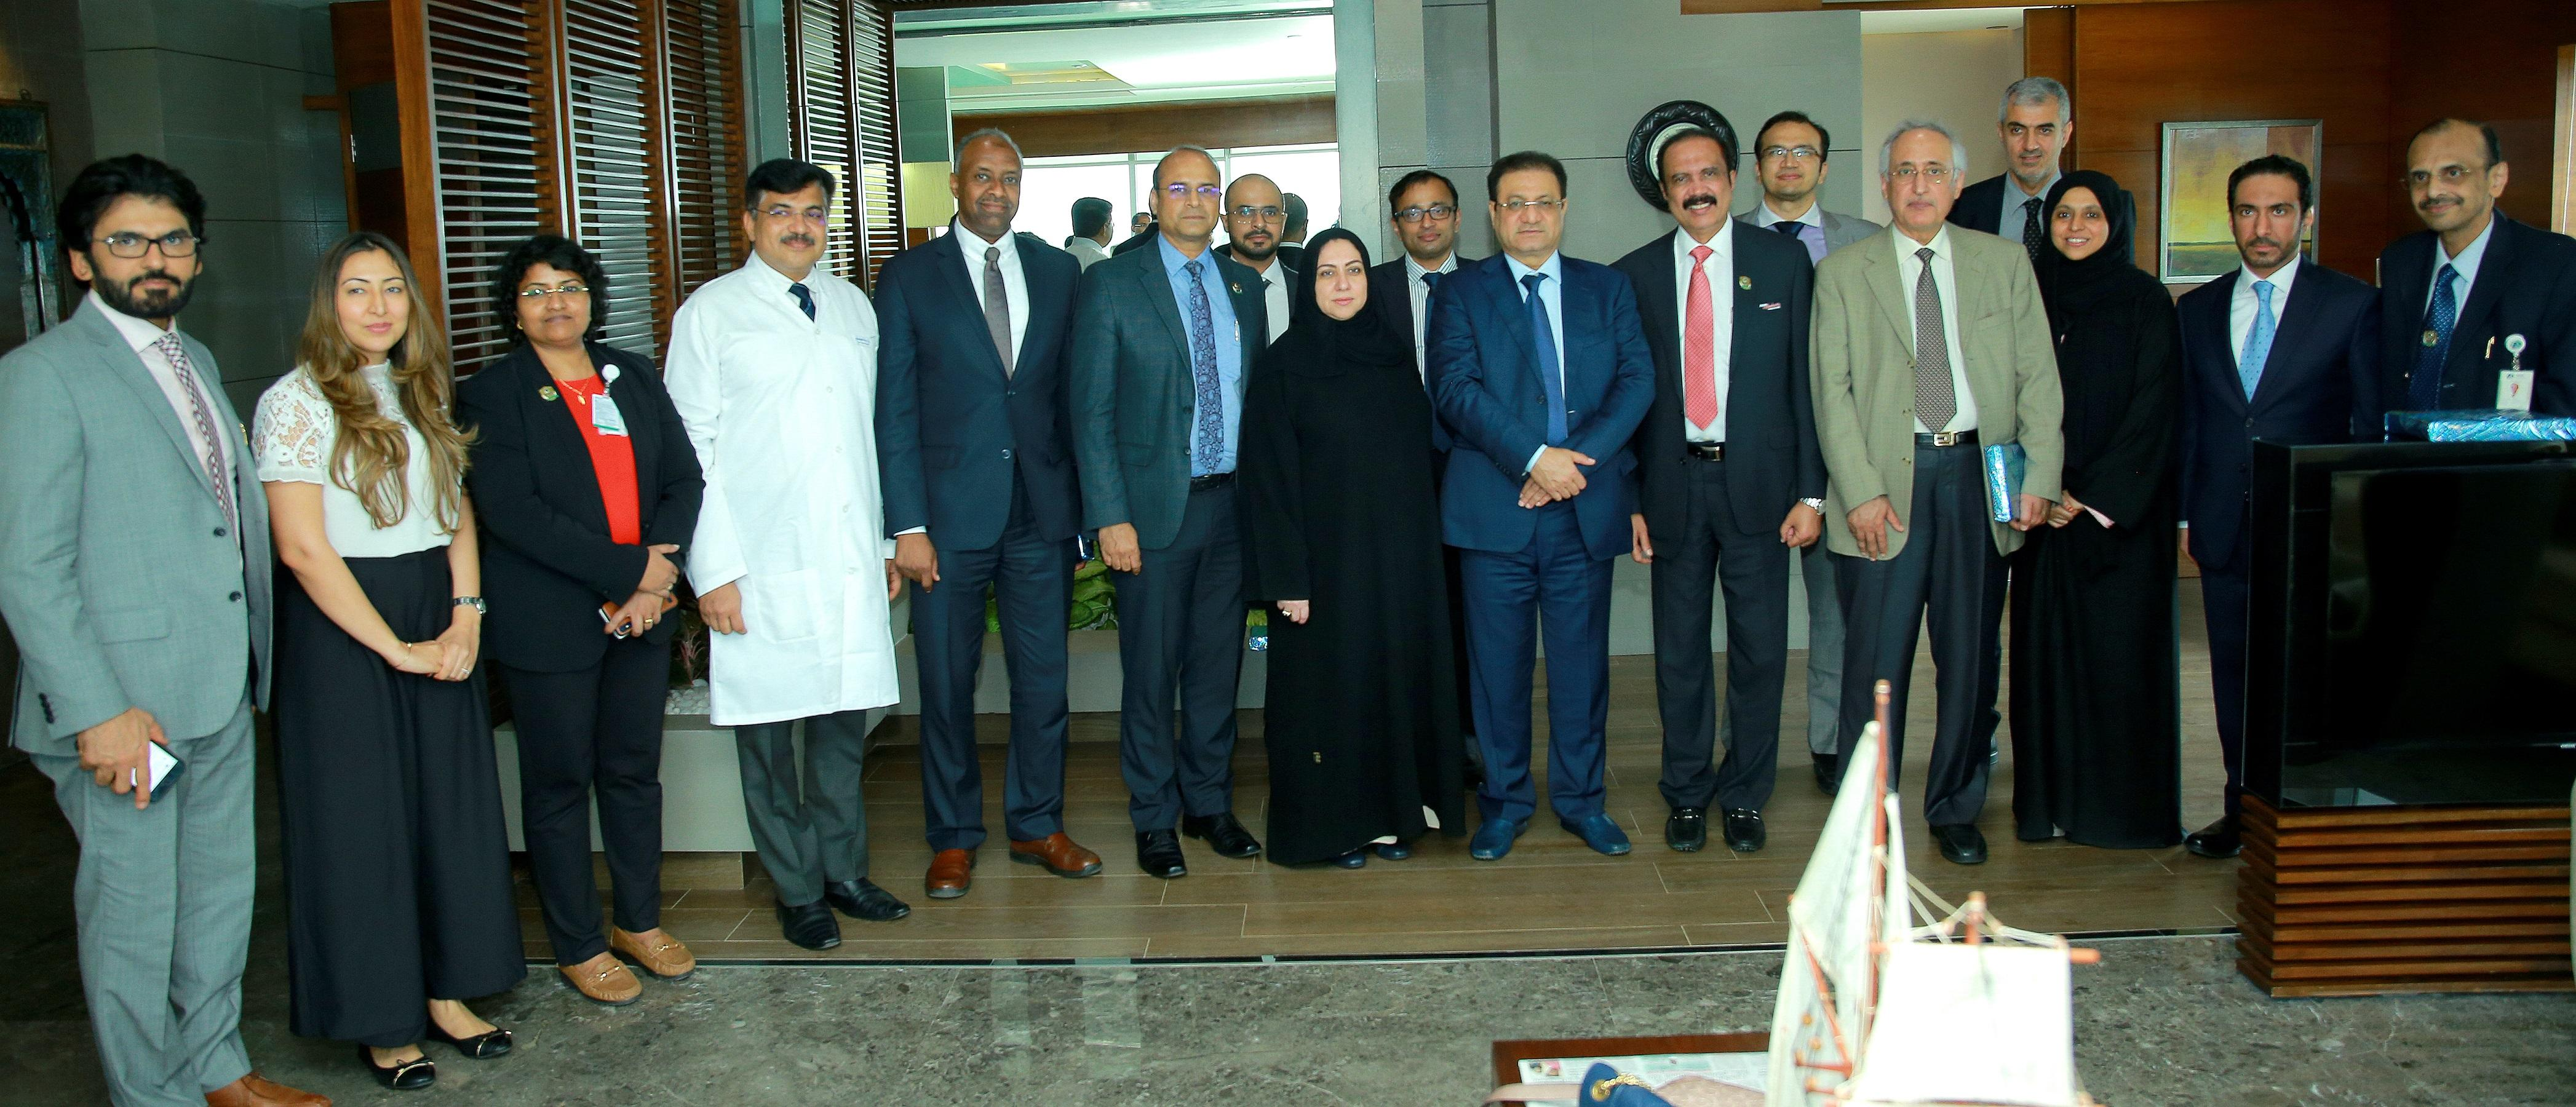 HE Humaid Al Qutami Director General of the DHA and his team of delegates with Dr Azad Moopen Chairman and MD of Aster DM Healthcare and team at Aster Medcity hospital Kochi